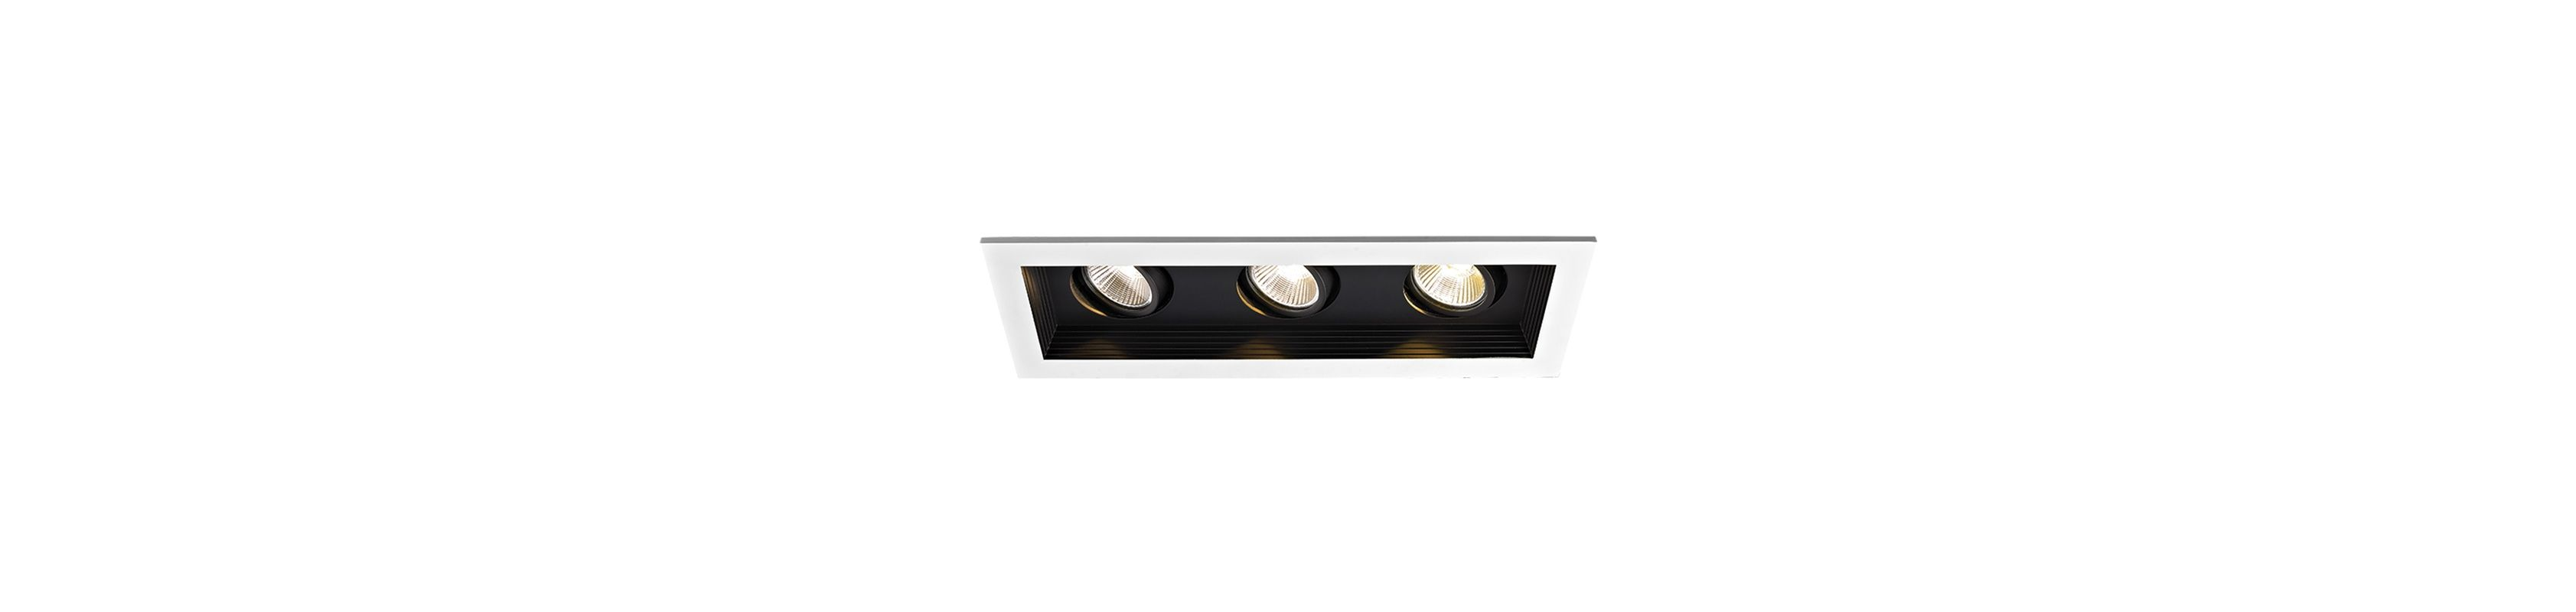 "WAC Lighting MT-3LD311NA-F30 New Construction 1 Light Mini LED Sale $540.00 ITEM#: 2426776 MODEL# :MT-3LD311NA-F30-BK UPC#: 790576290089 Features: Complete unit with housing and trim Each light individually adjustable 30° Beam angle cutoff for reduced glare Lamping Technology: Fixture Output Efficiency: 68.64 Lumens per Watt LED - Light Emitting Diode: Highly efficient diodes produce little heat and have an extremely long lifespan. Specifications: Number of Bulbs: 1 Bulb Type: LED Bulb Included: Yes Watts Per Bulb: 33 Wattage: 33 Voltage: 120 Average Hours: 50000 Color Rendering Index (CRI): 85 Color Temperature: 3000K Height: 8.69"" Width: 17.88"" Depth: 5.13"" UL Listed: Yes :"